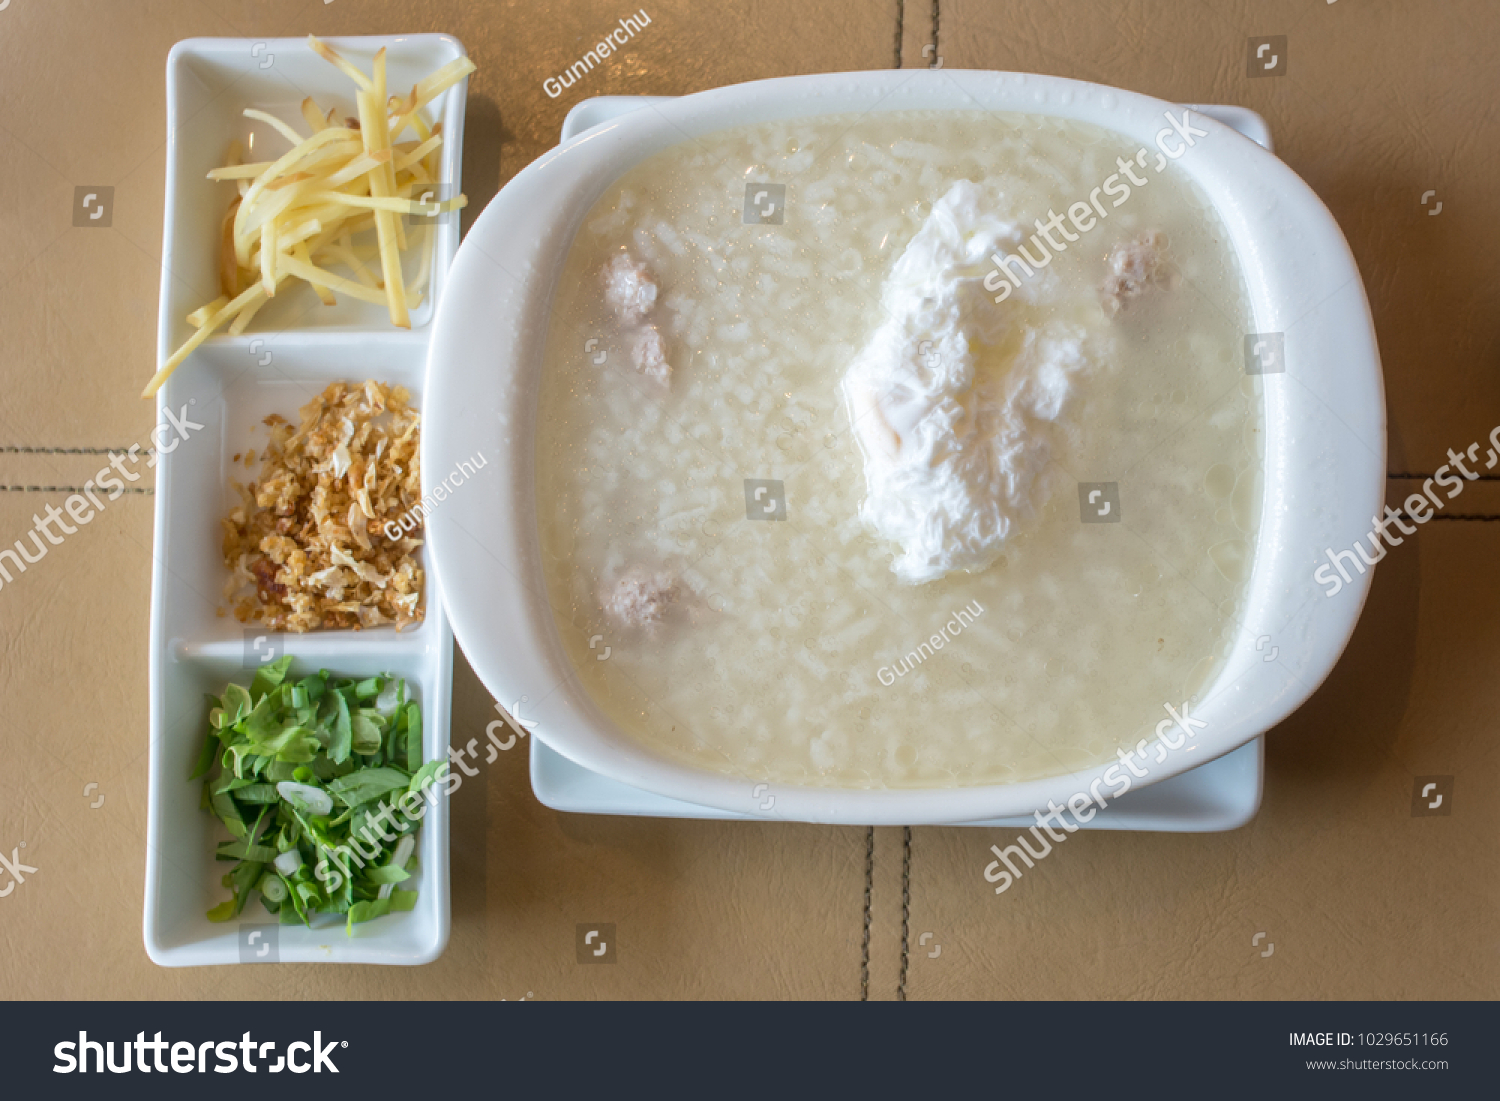 Chinese recipe rice porridge boiled egg minced stock photo download chinese reciperice porridge with boiled egg minced pork chicken liver ginger forumfinder Choice Image